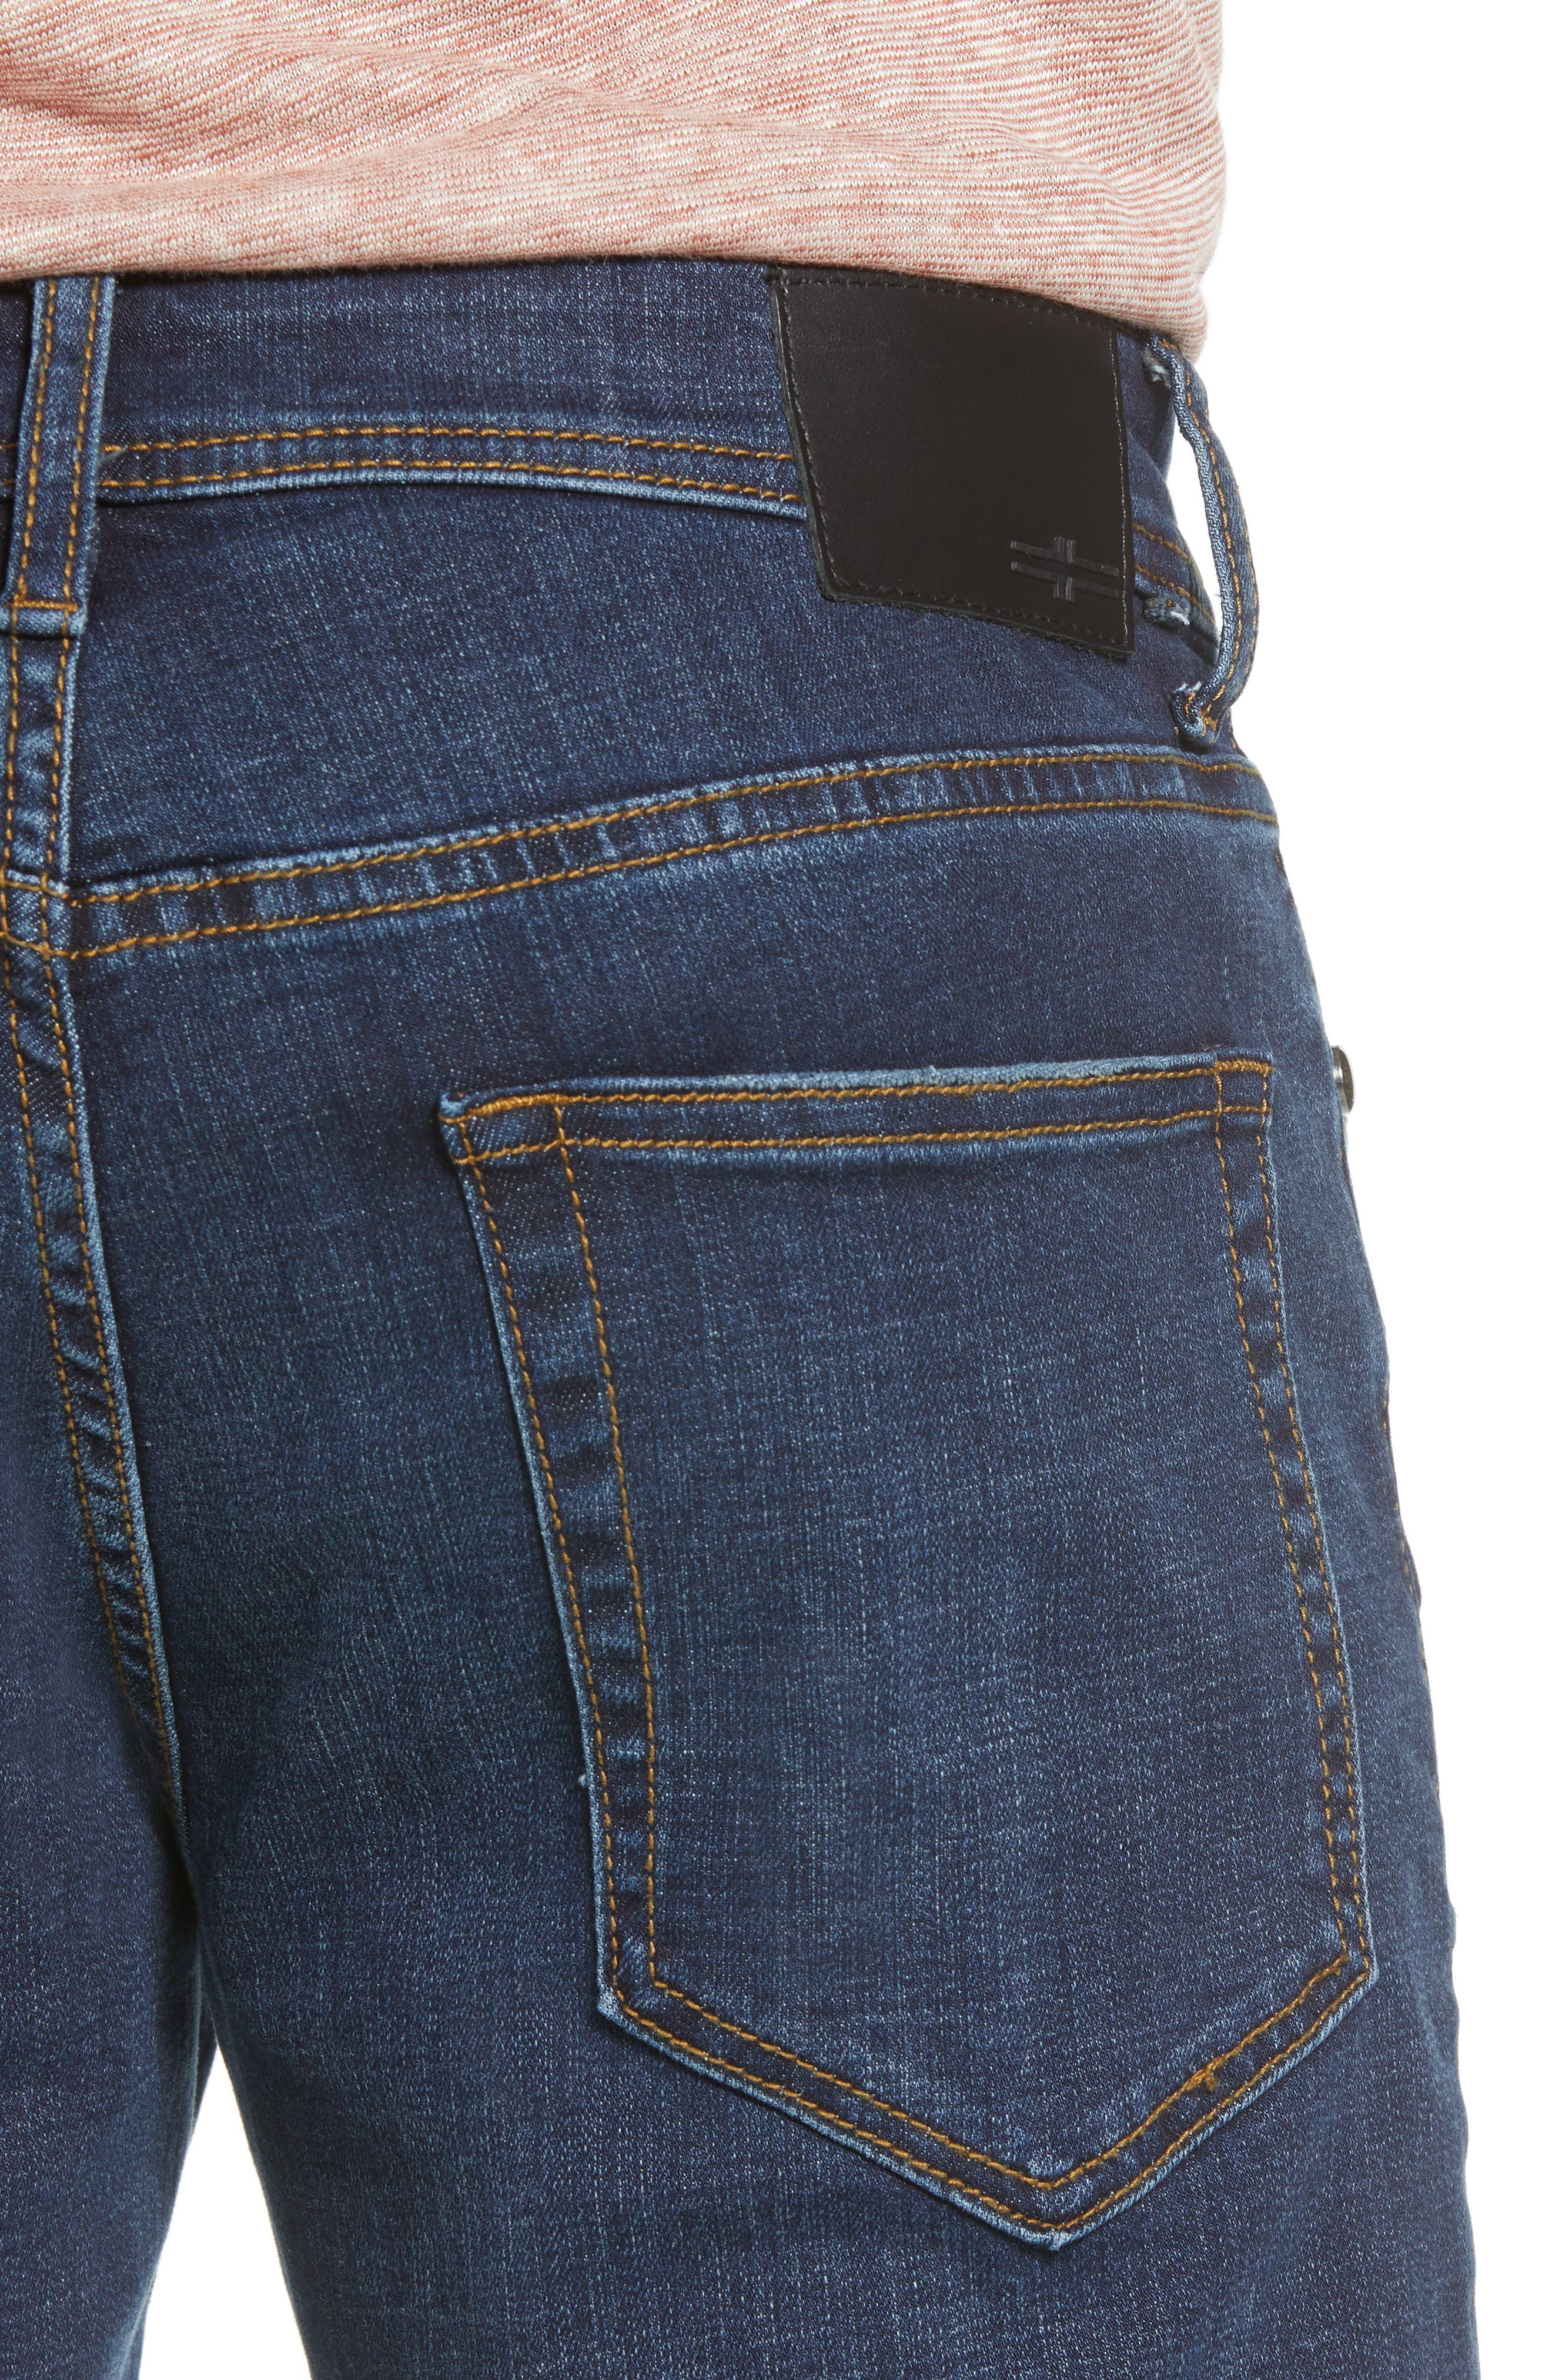 Relaxed Fit Jeans,                             Alternate thumbnail 4, color,                             Navajo Dark